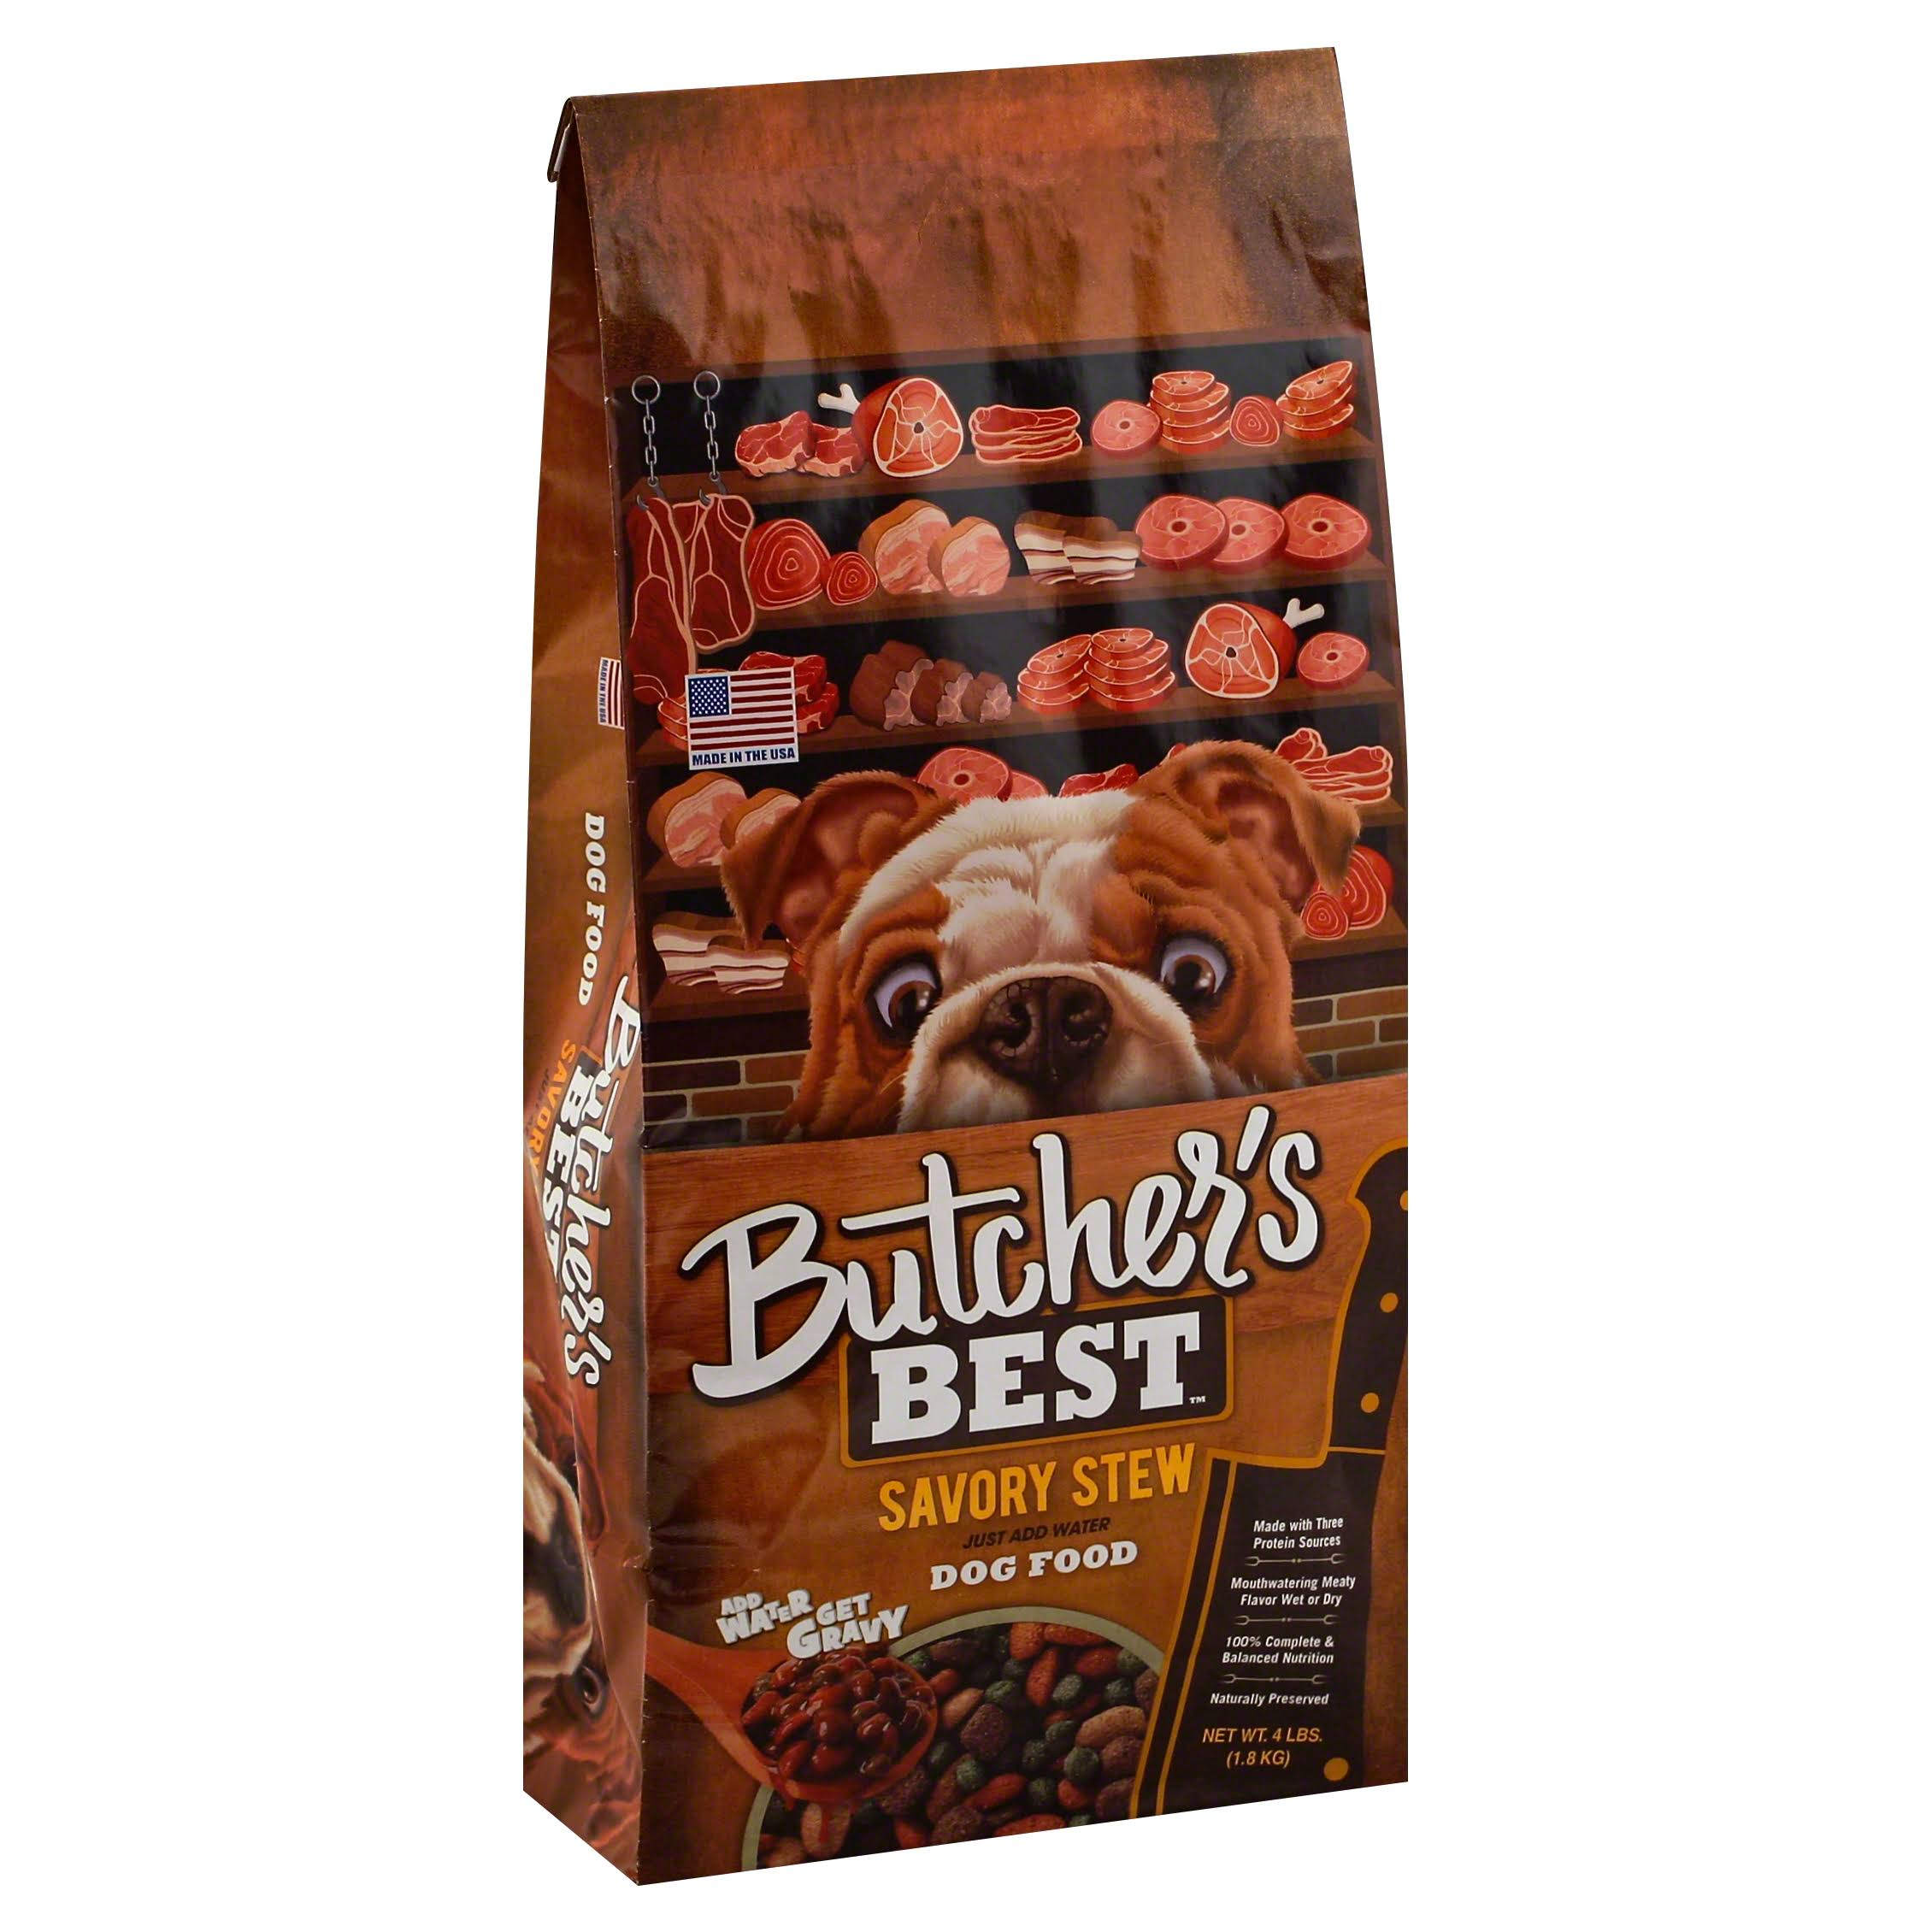 Butchers Best Dog Food, Savory Stew - 4 lb